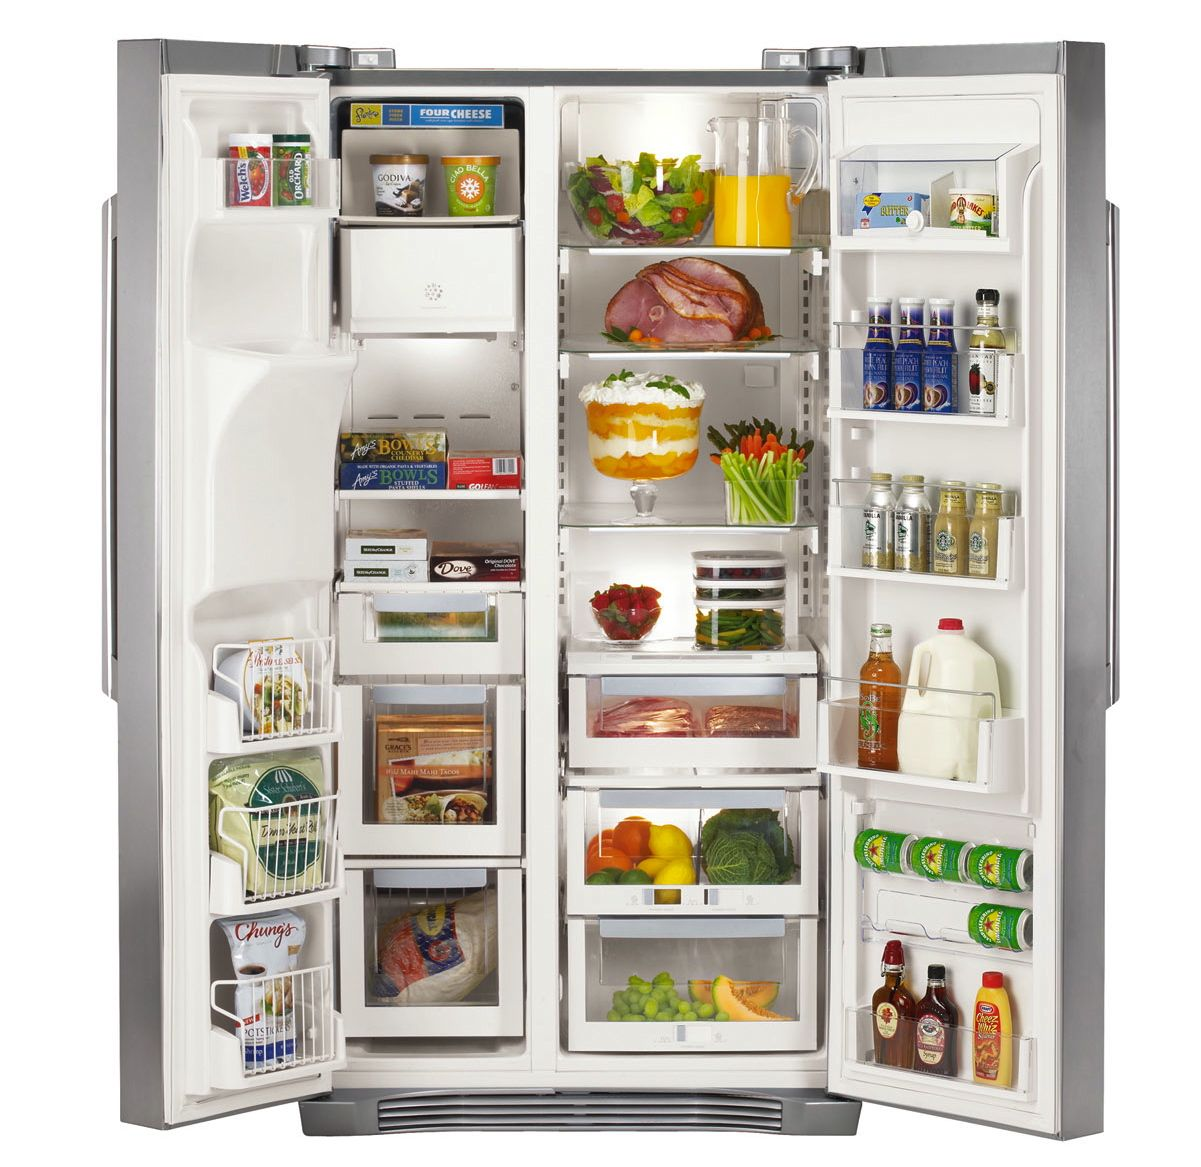 Uncategorized Energy Saving Kitchen Appliances energy efficient refrigerator will save you money friedmans the 9 preset temp drawer saving electrolux refrigeration